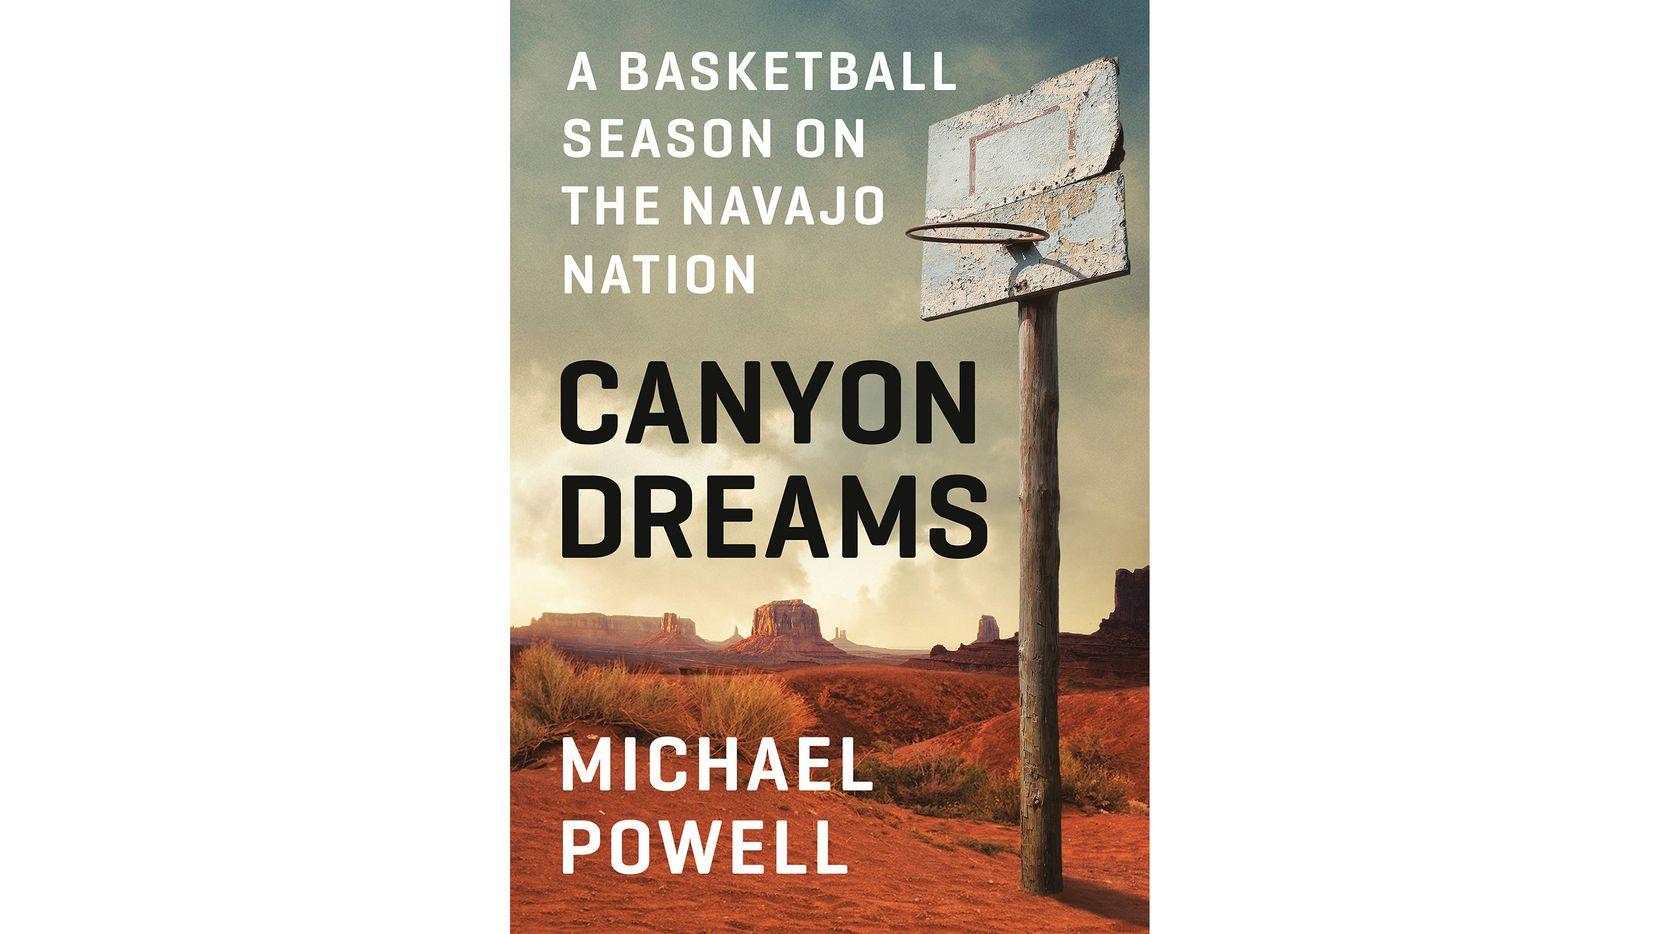 """Canyon Dreams: A Basketball Season on the Navajo Nation"" follows an American Indian team in northern Arizona."